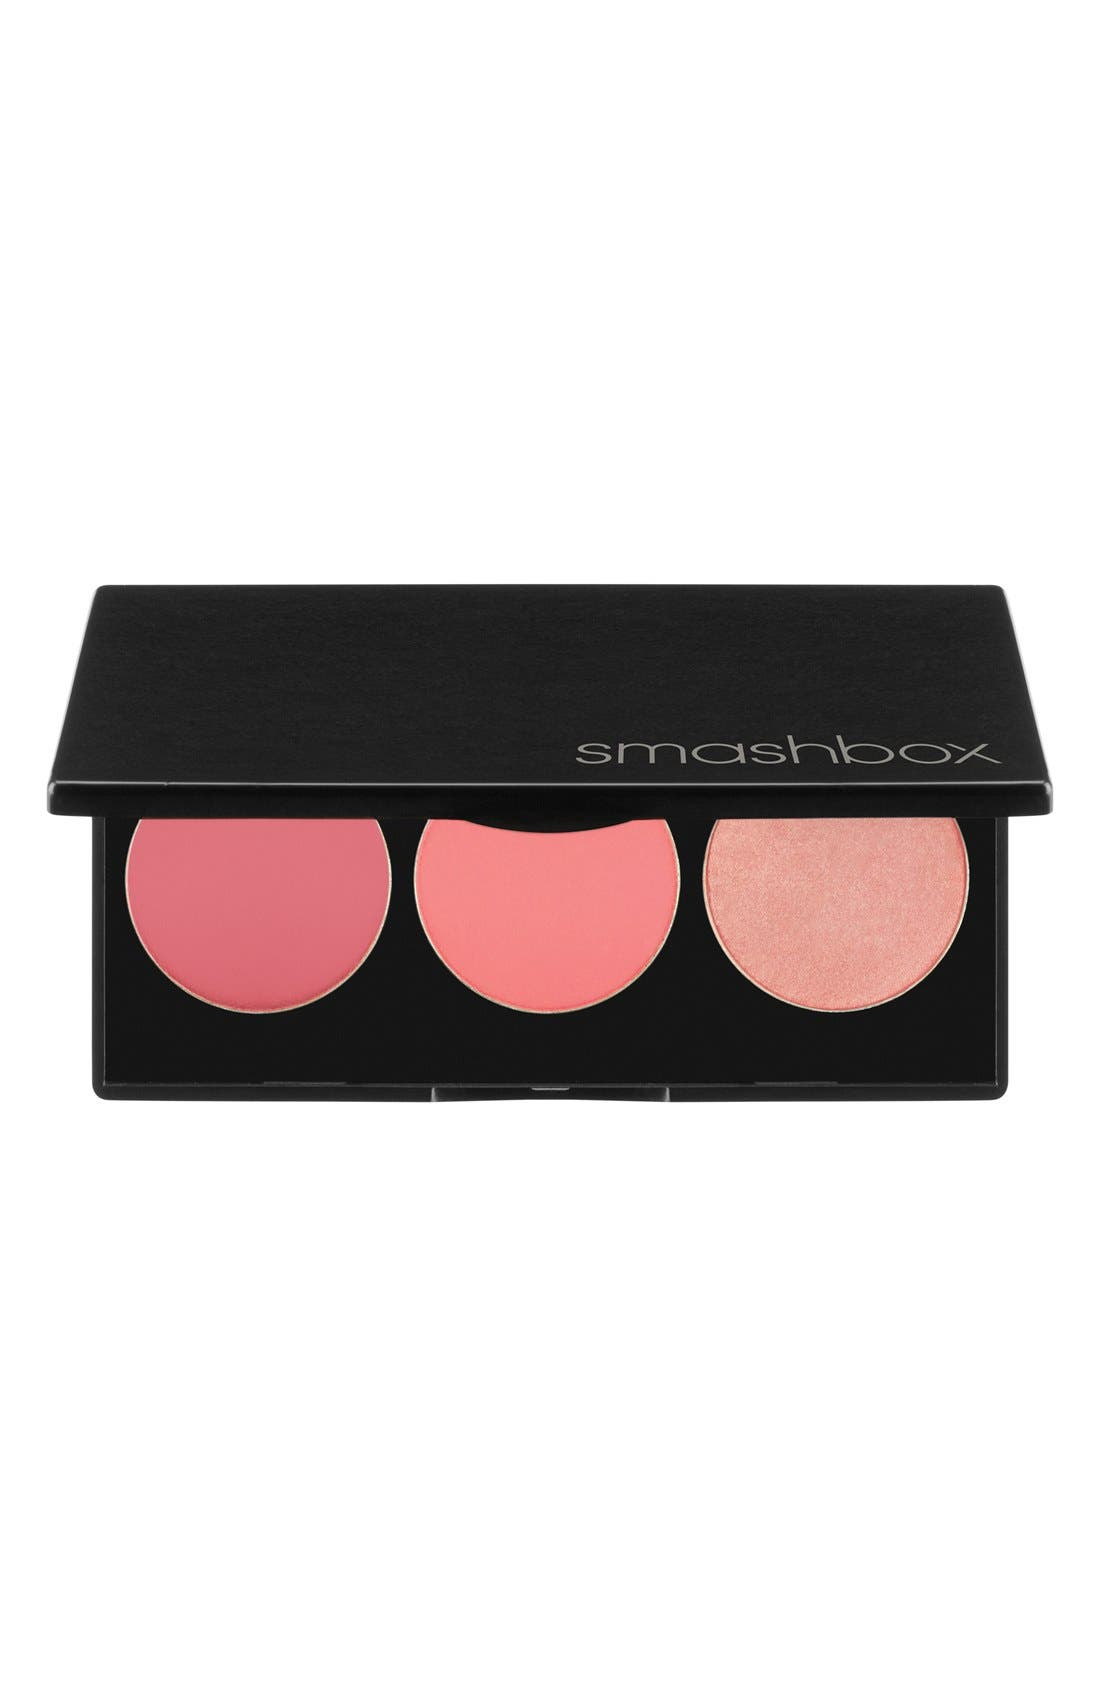 L.A. Lights Blush & Highlighter Palette,                             Main thumbnail 1, color,                             PACIFIC COAST PINK